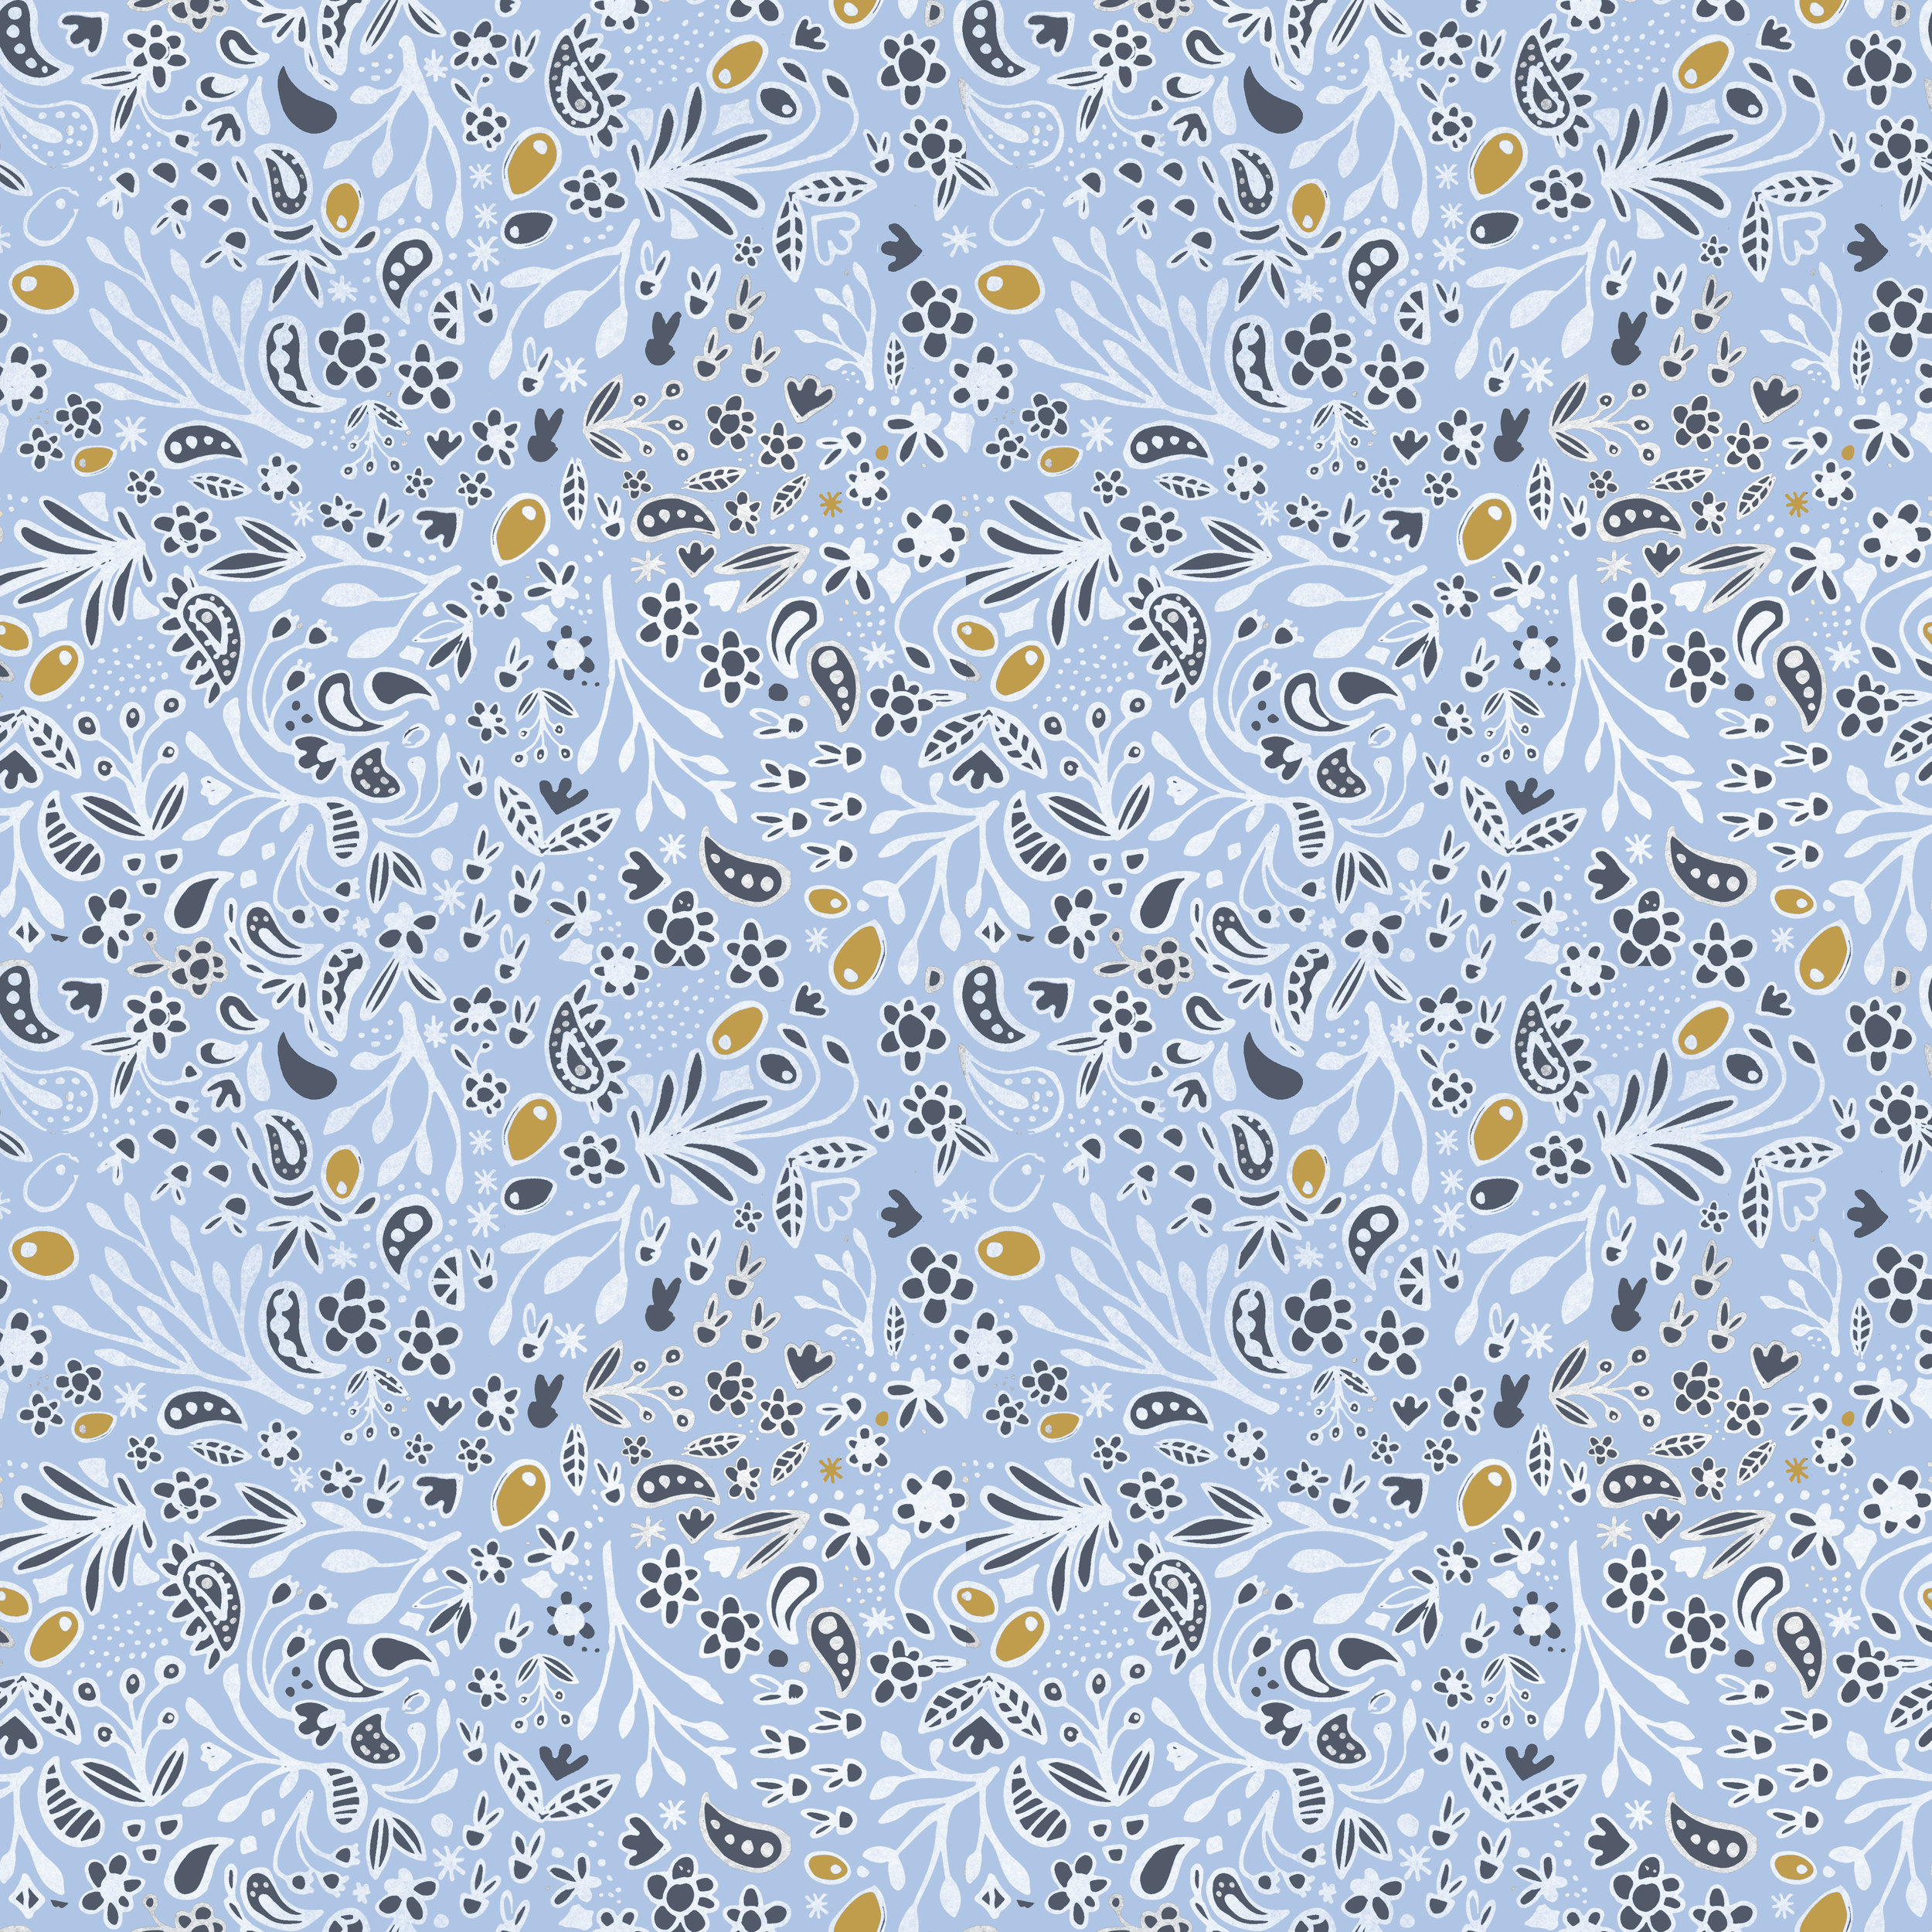 winter-pattern-ALS-banner.jpg